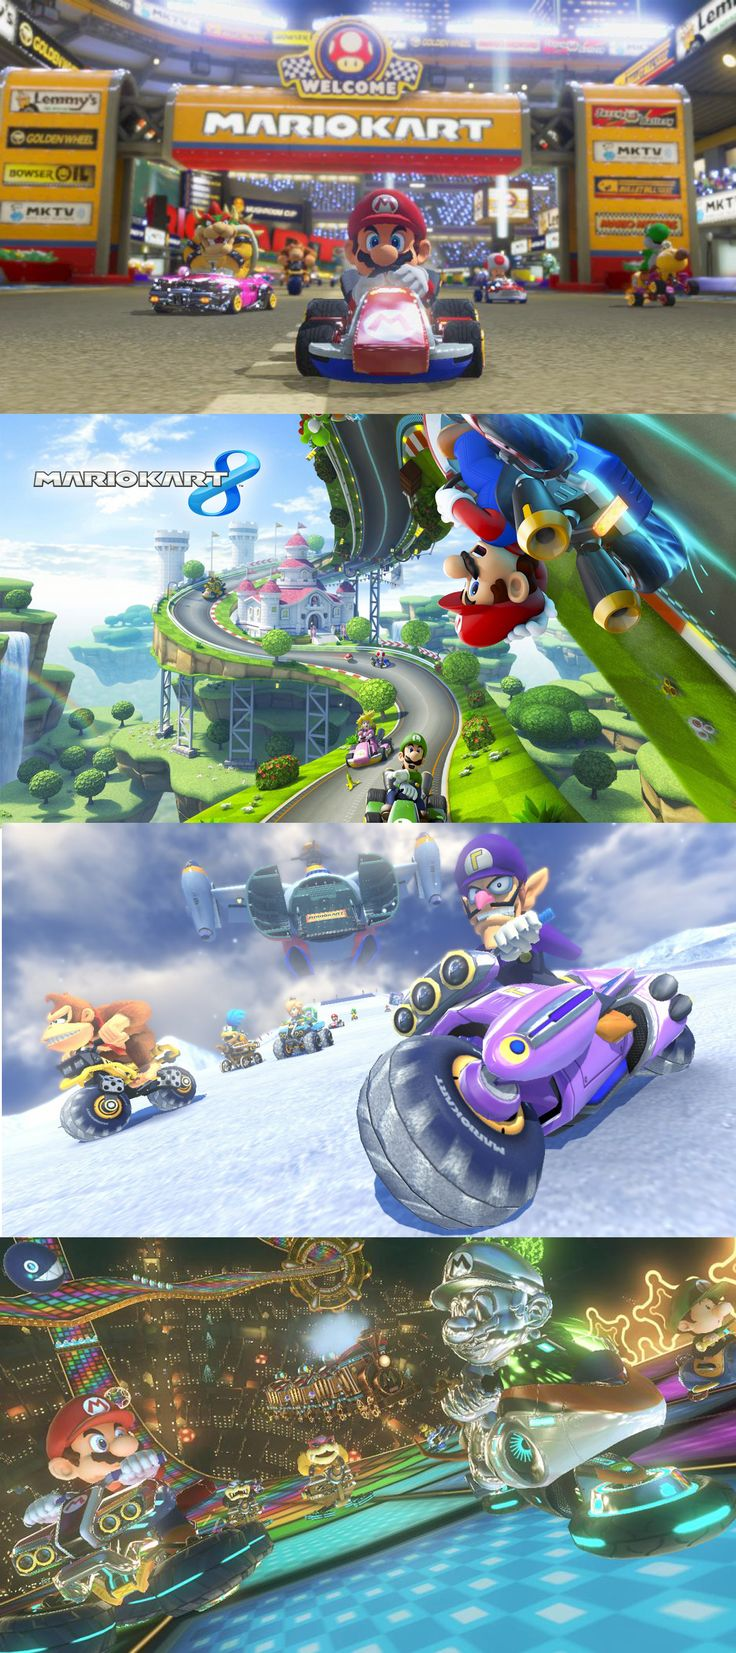 'Mario Kart 8' Review: Life In The Fast Lane. Mario Kart 8 may be my favorite entry in the long-running franchise, at least since the original games. Minus one very big quibble, which I'll get to shortly, this is the tightest, most frenetic, and certainly most gorgeous of the Mario Kart games, and it's yet another excellent release for Nintendo's struggling Wii U.